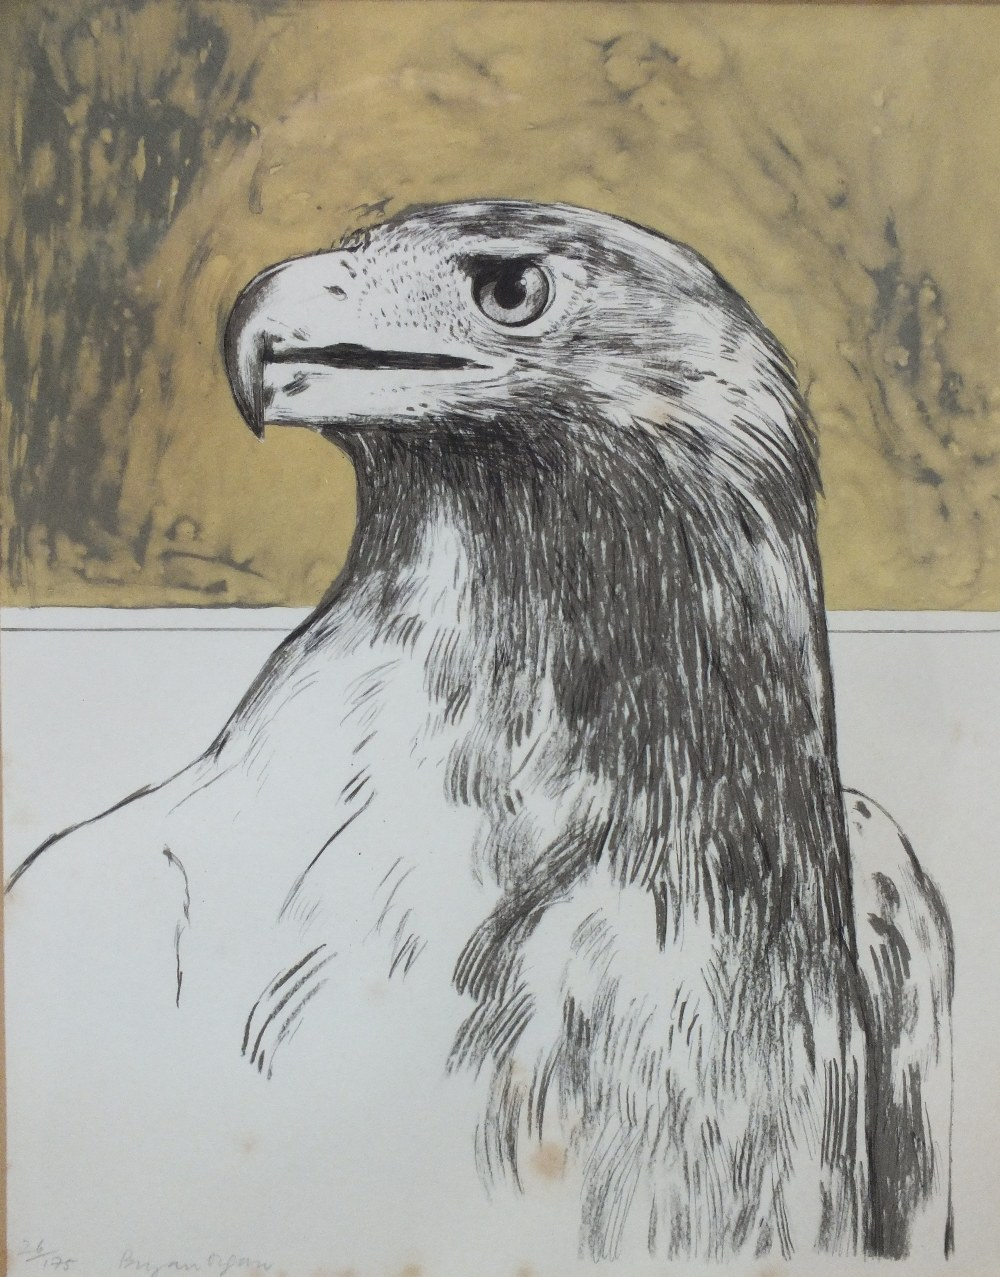 Lot 49 - BRYAN ORGAN (b.1935). Study of an eagle, signed in pencil lower left, limited edition lithograph